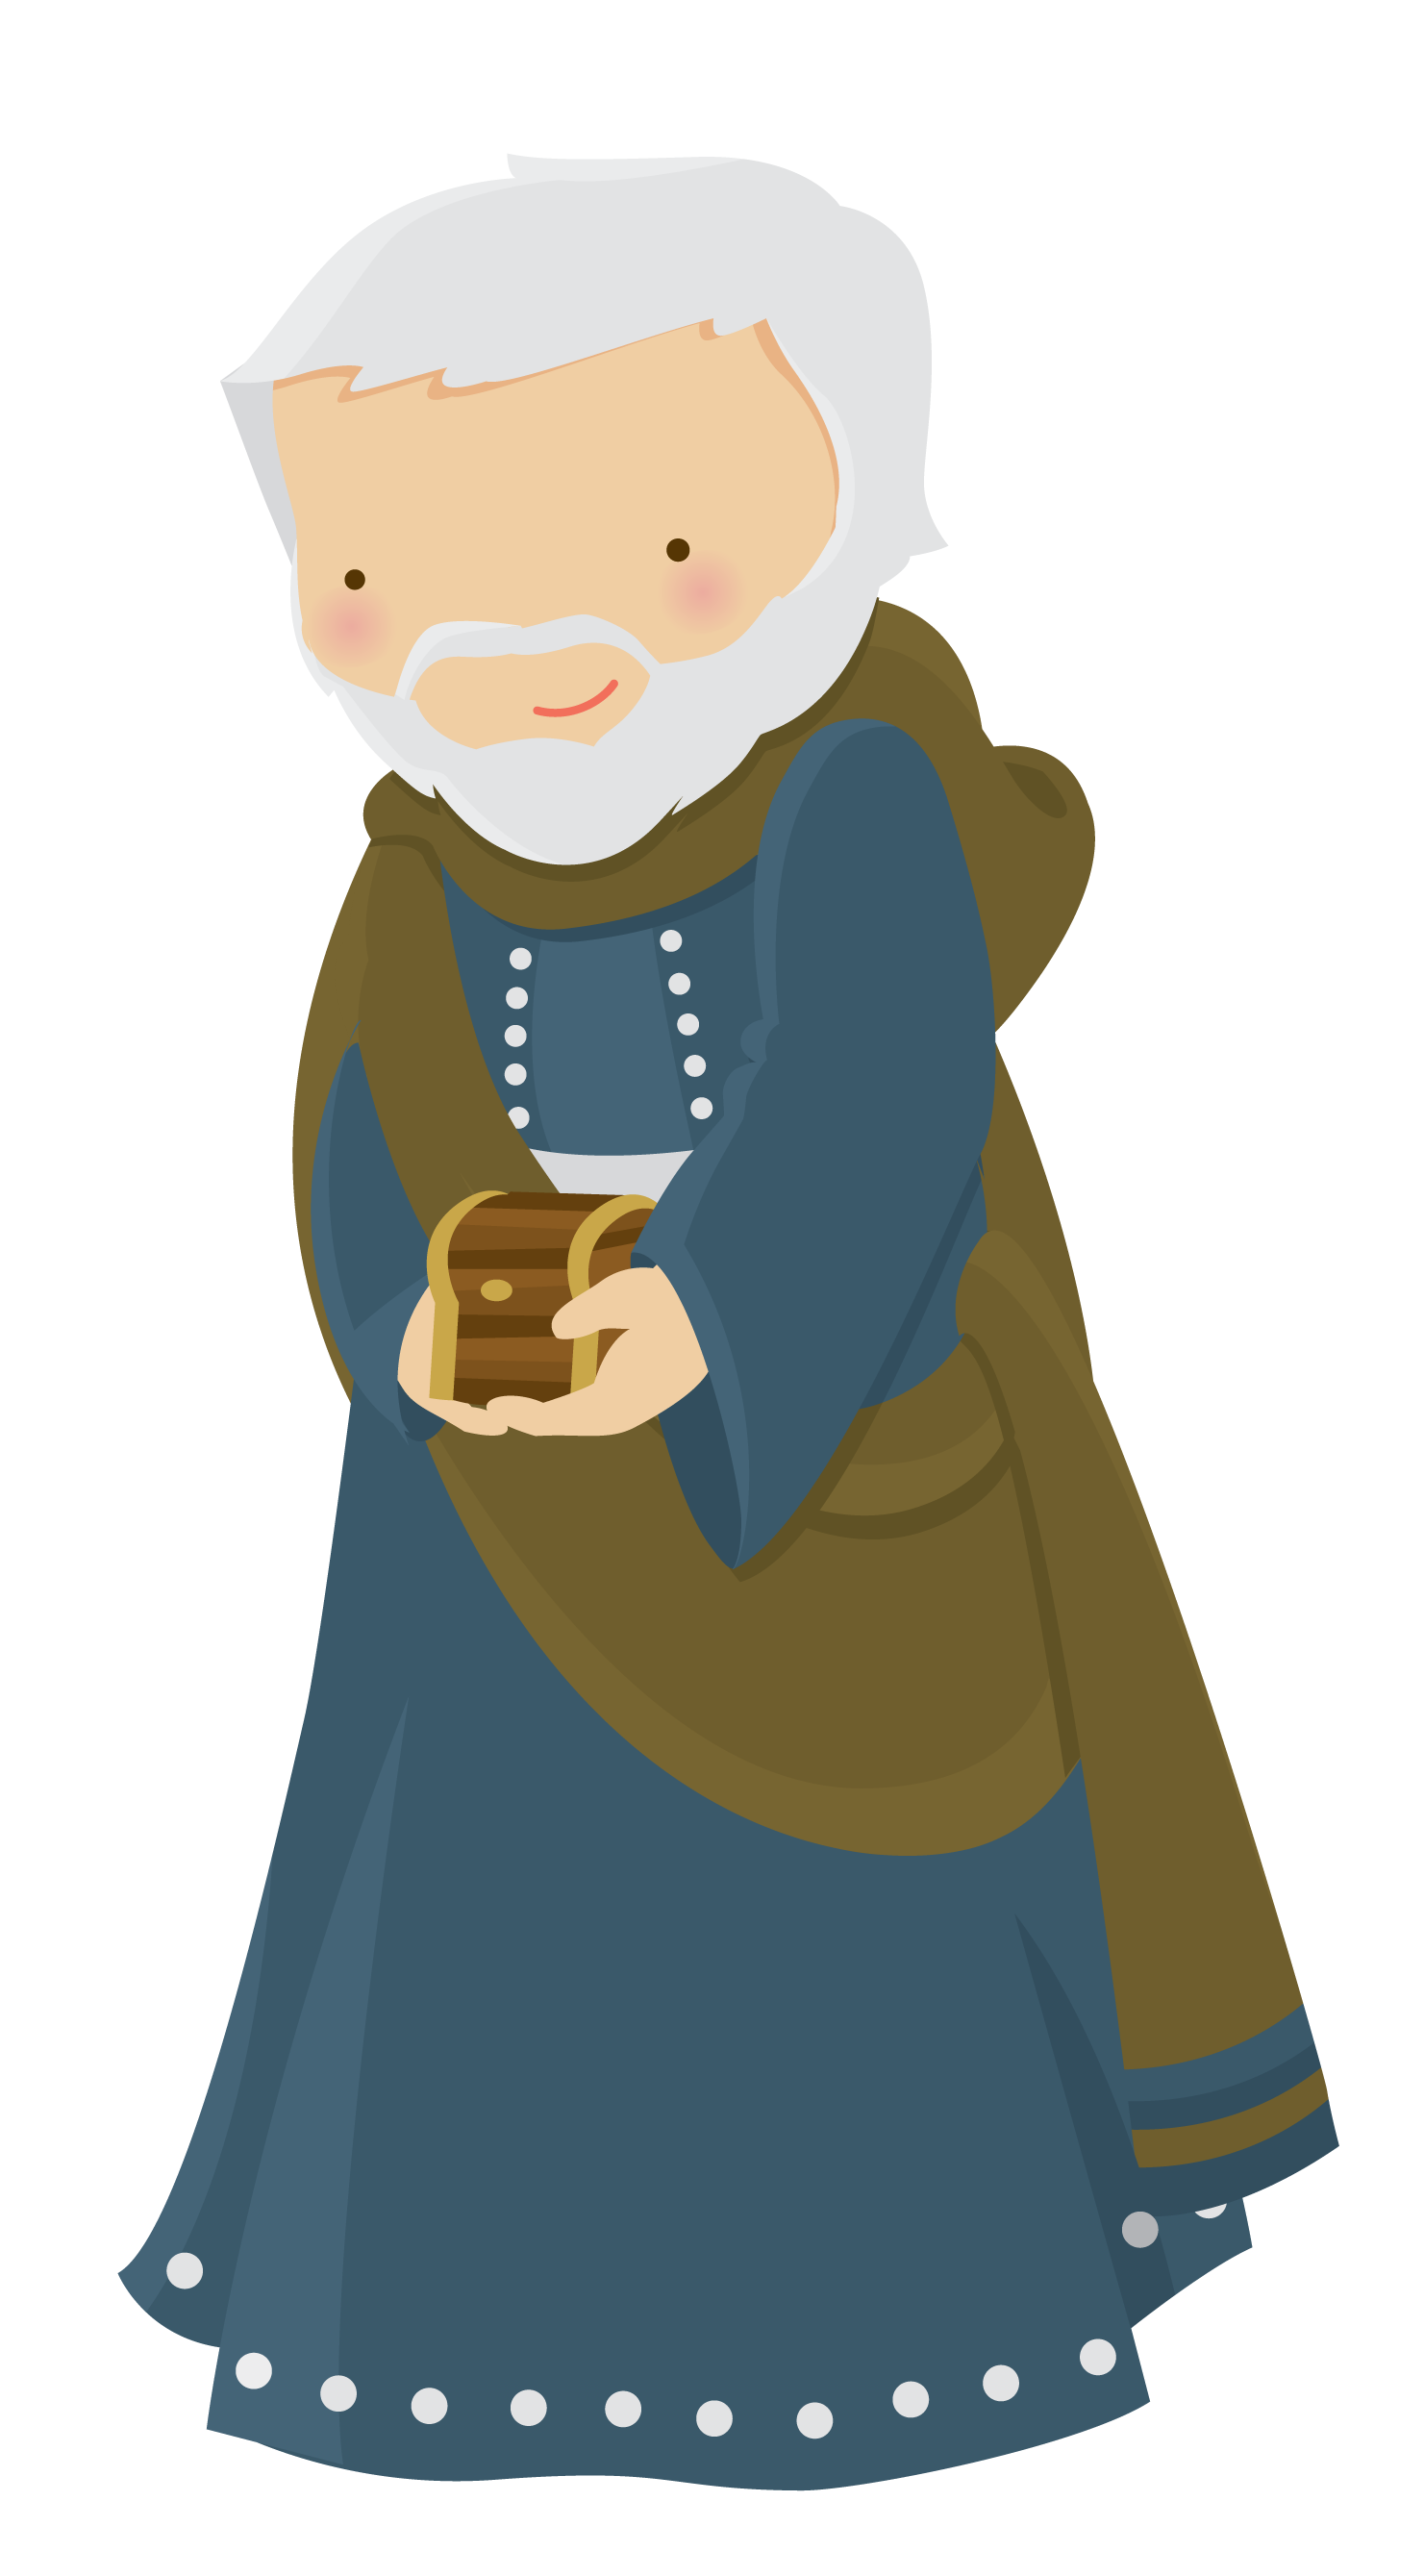 Tr s reis magos. Epiphany clipart animated